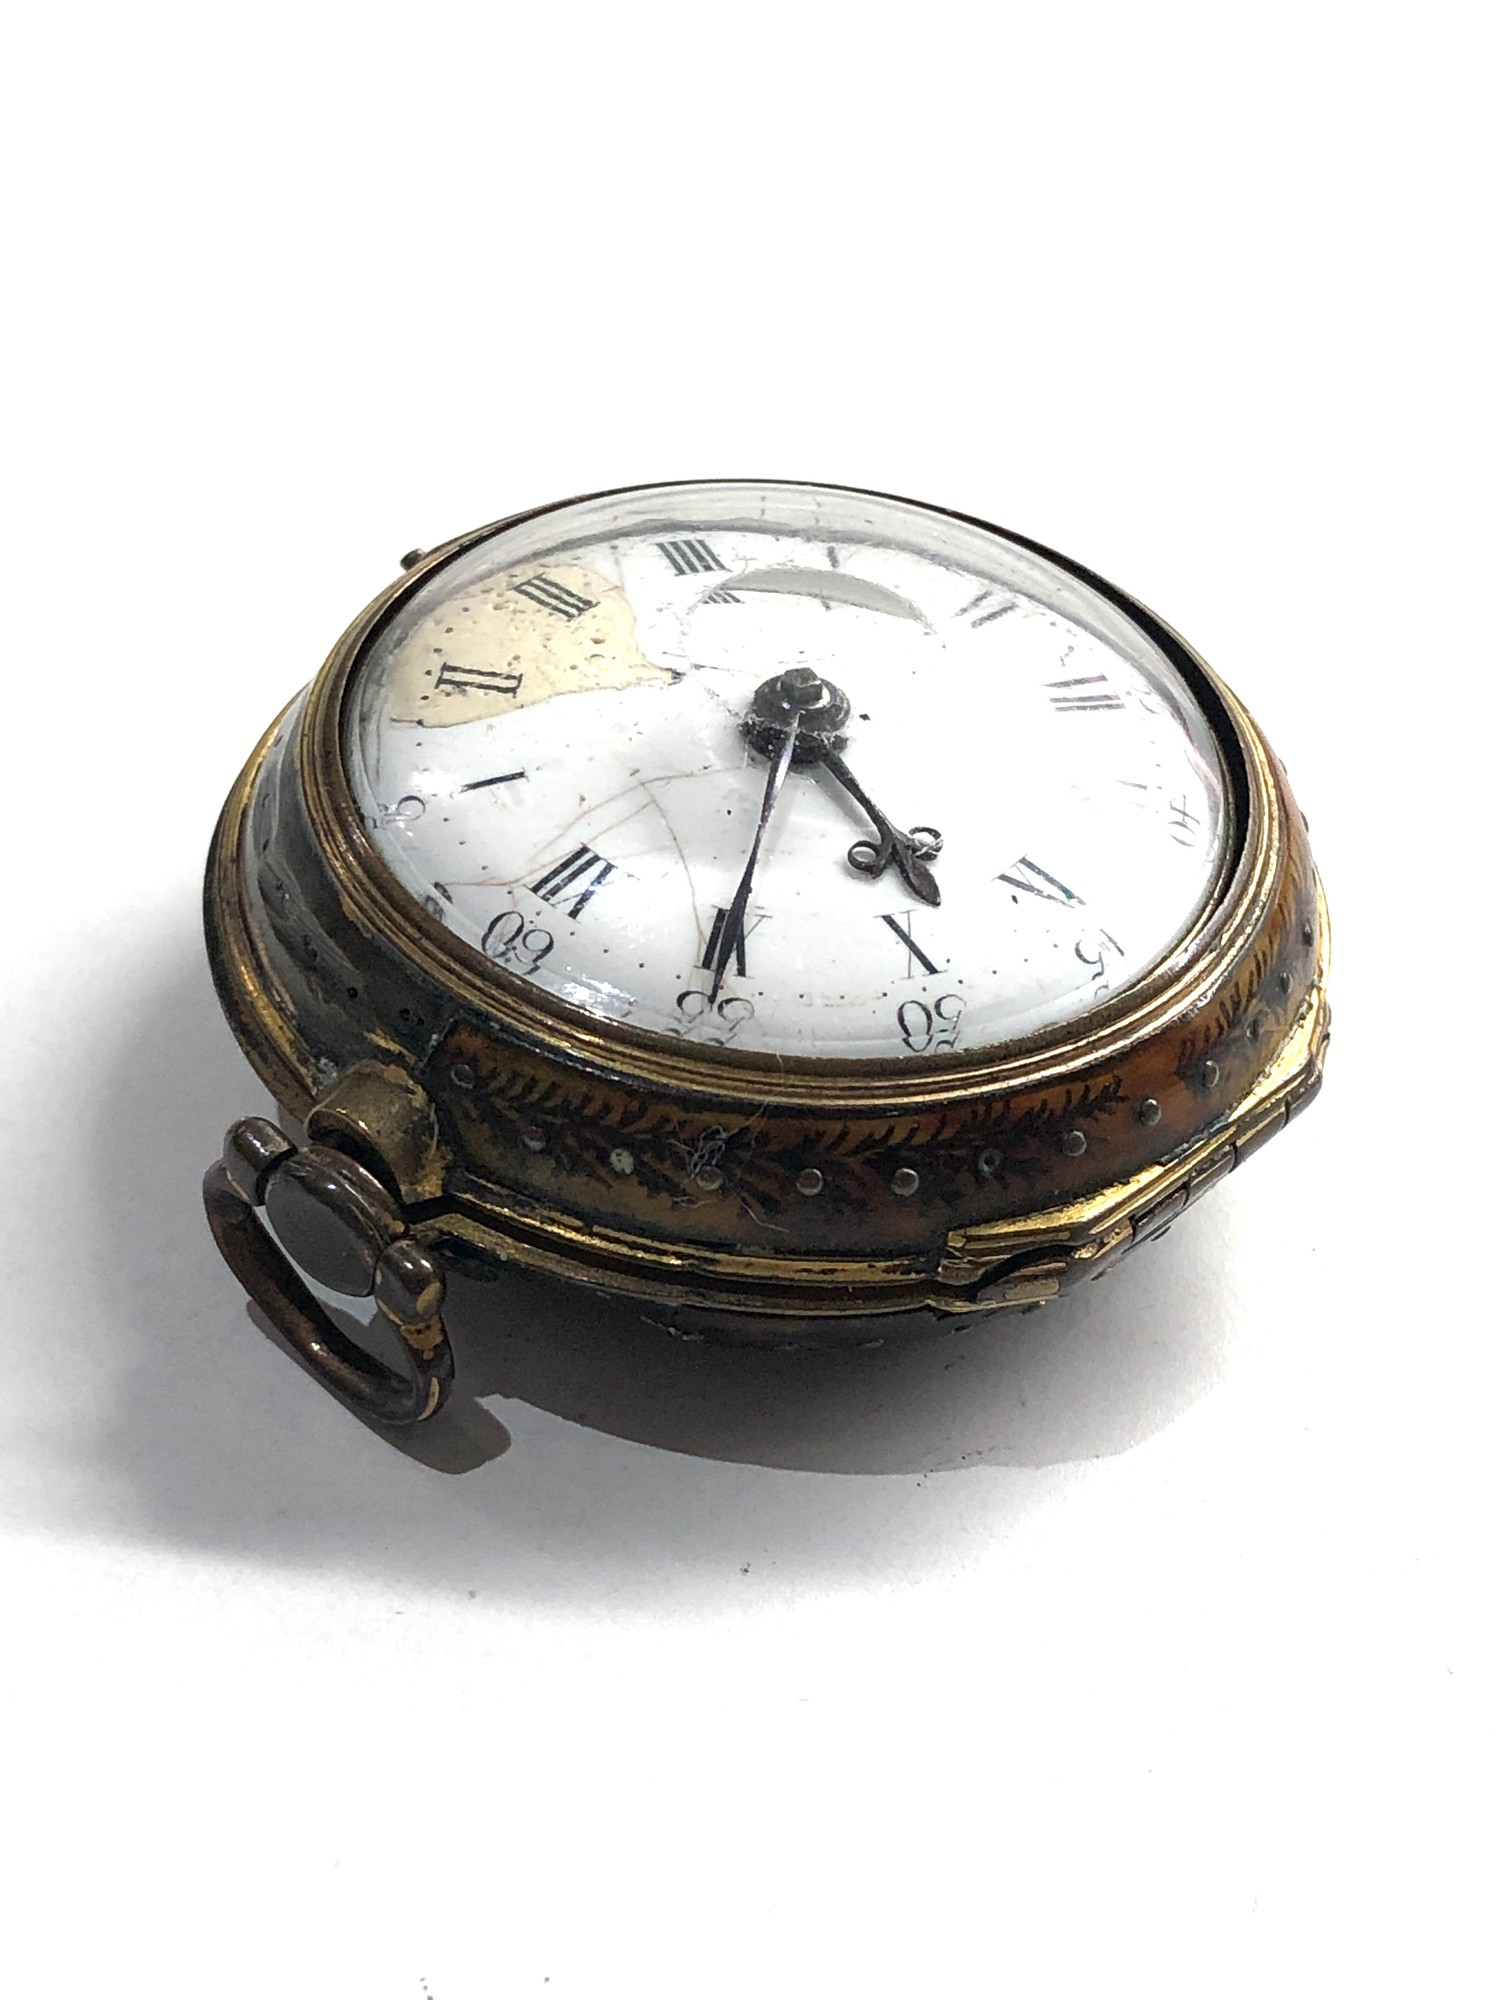 18th century London paircase verge pocket watch the watch does wind and tick dial damaged outer case - Image 9 of 9